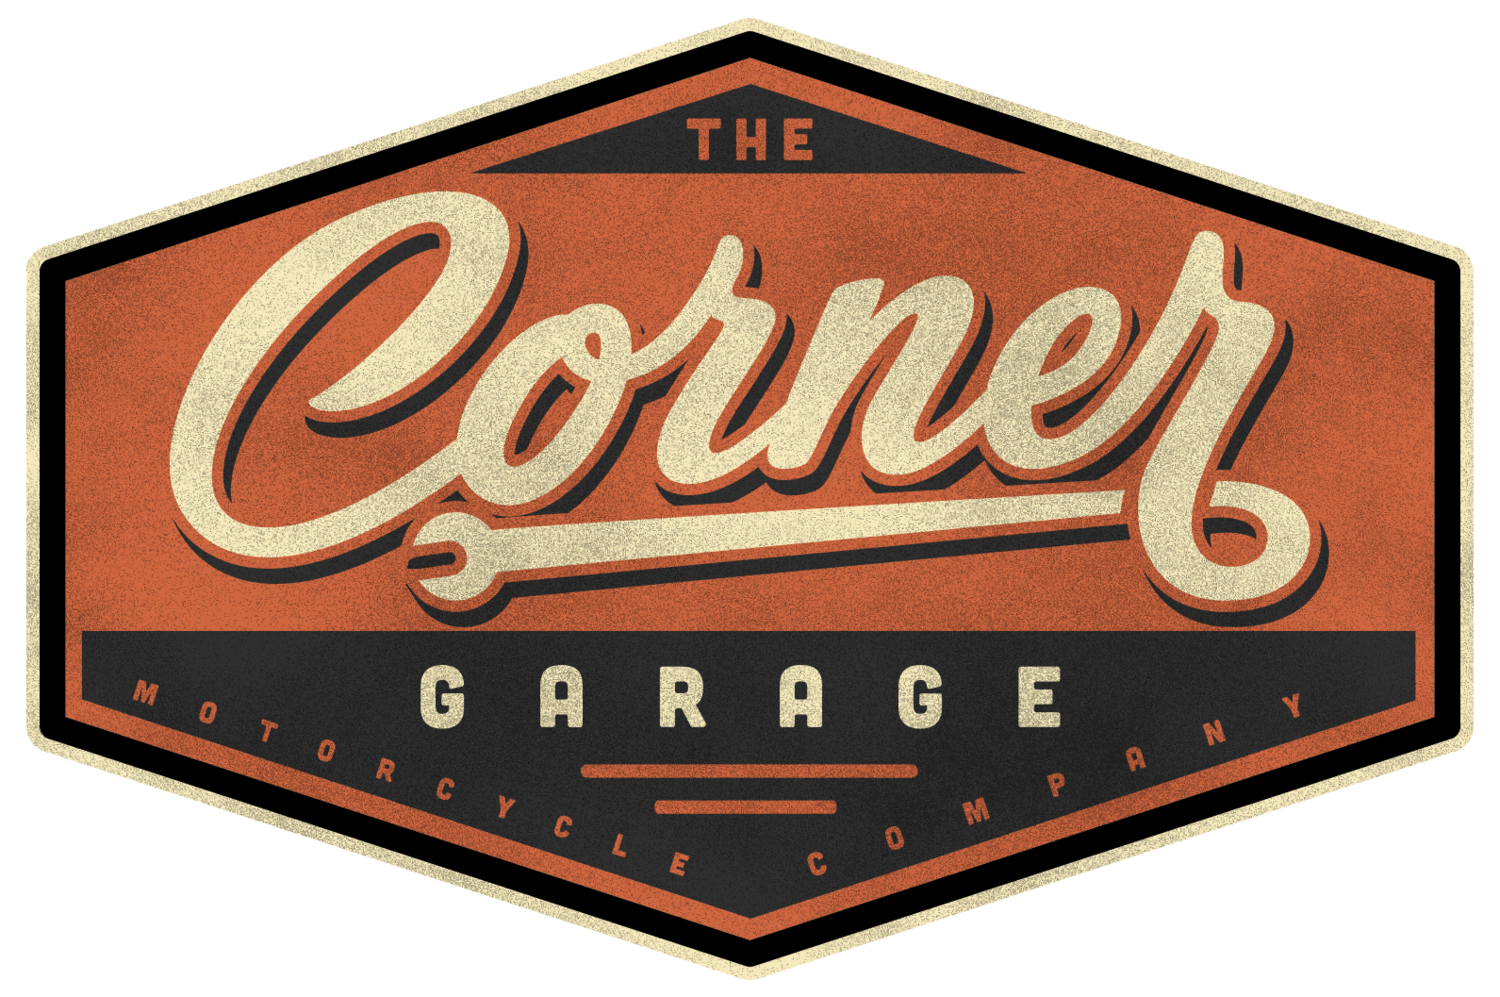 The Corner Garage Motorcycle Co. | Miami, Florida